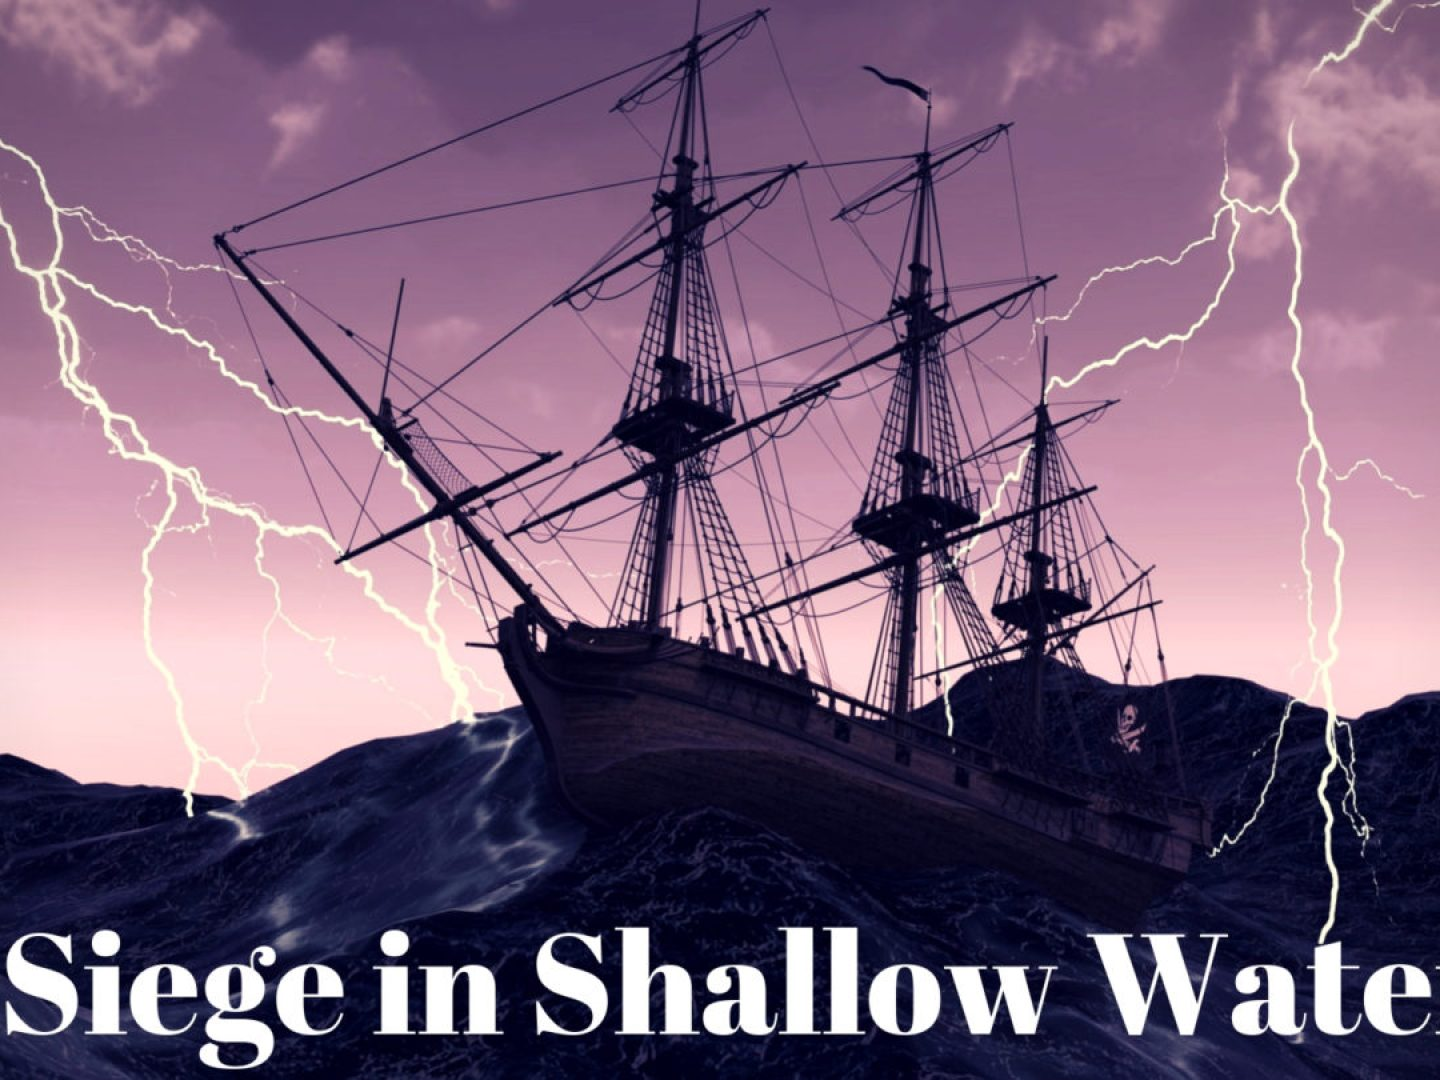 A Siege in Shallow Waters: A Collaborative Poem